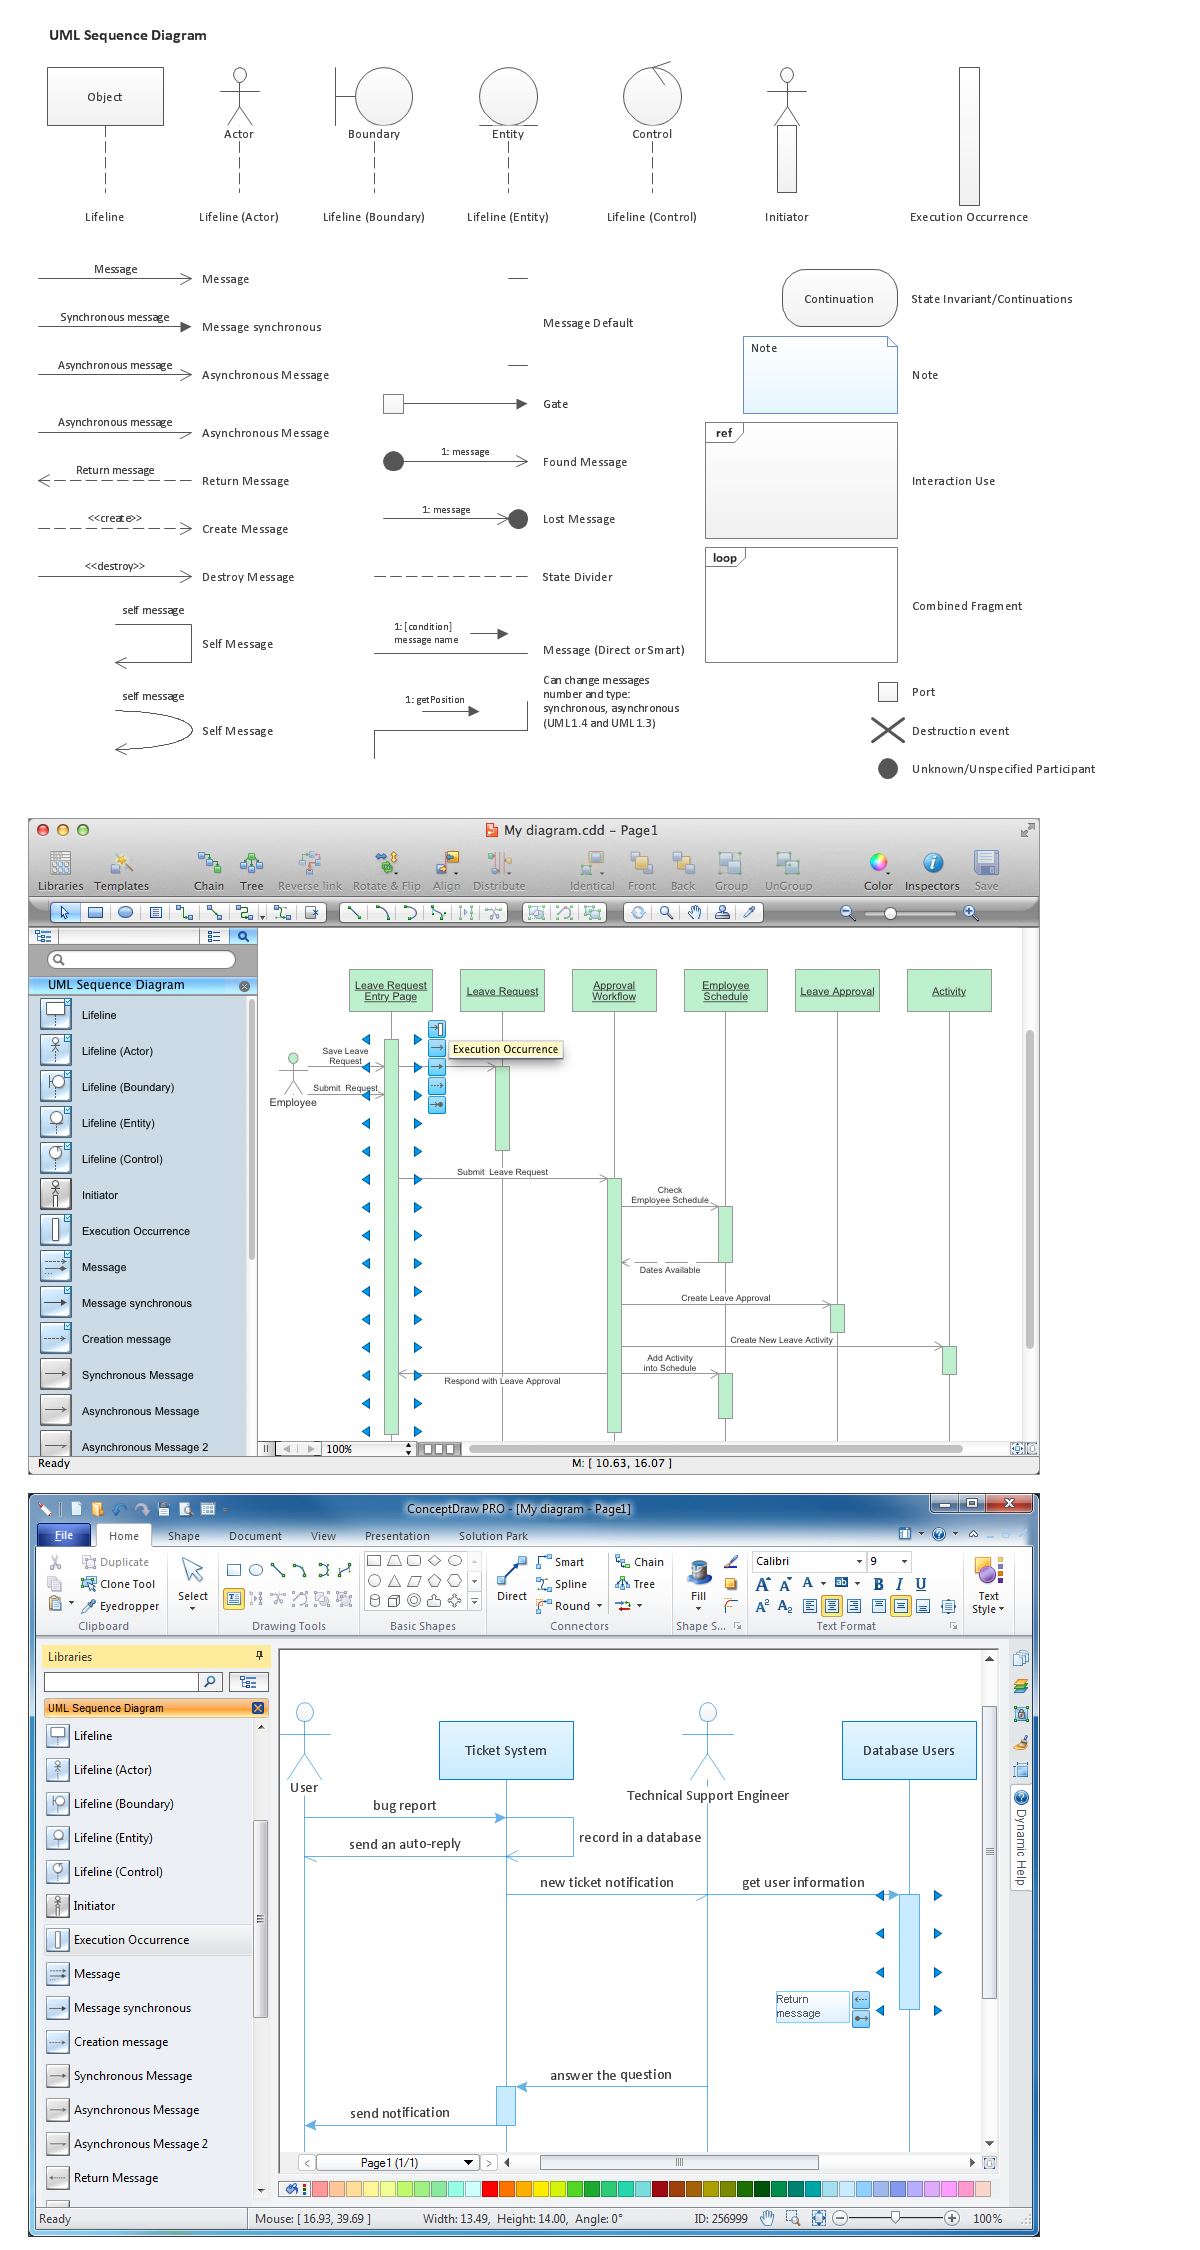 Diagramming Software for designing UML Sequence Diagrams *